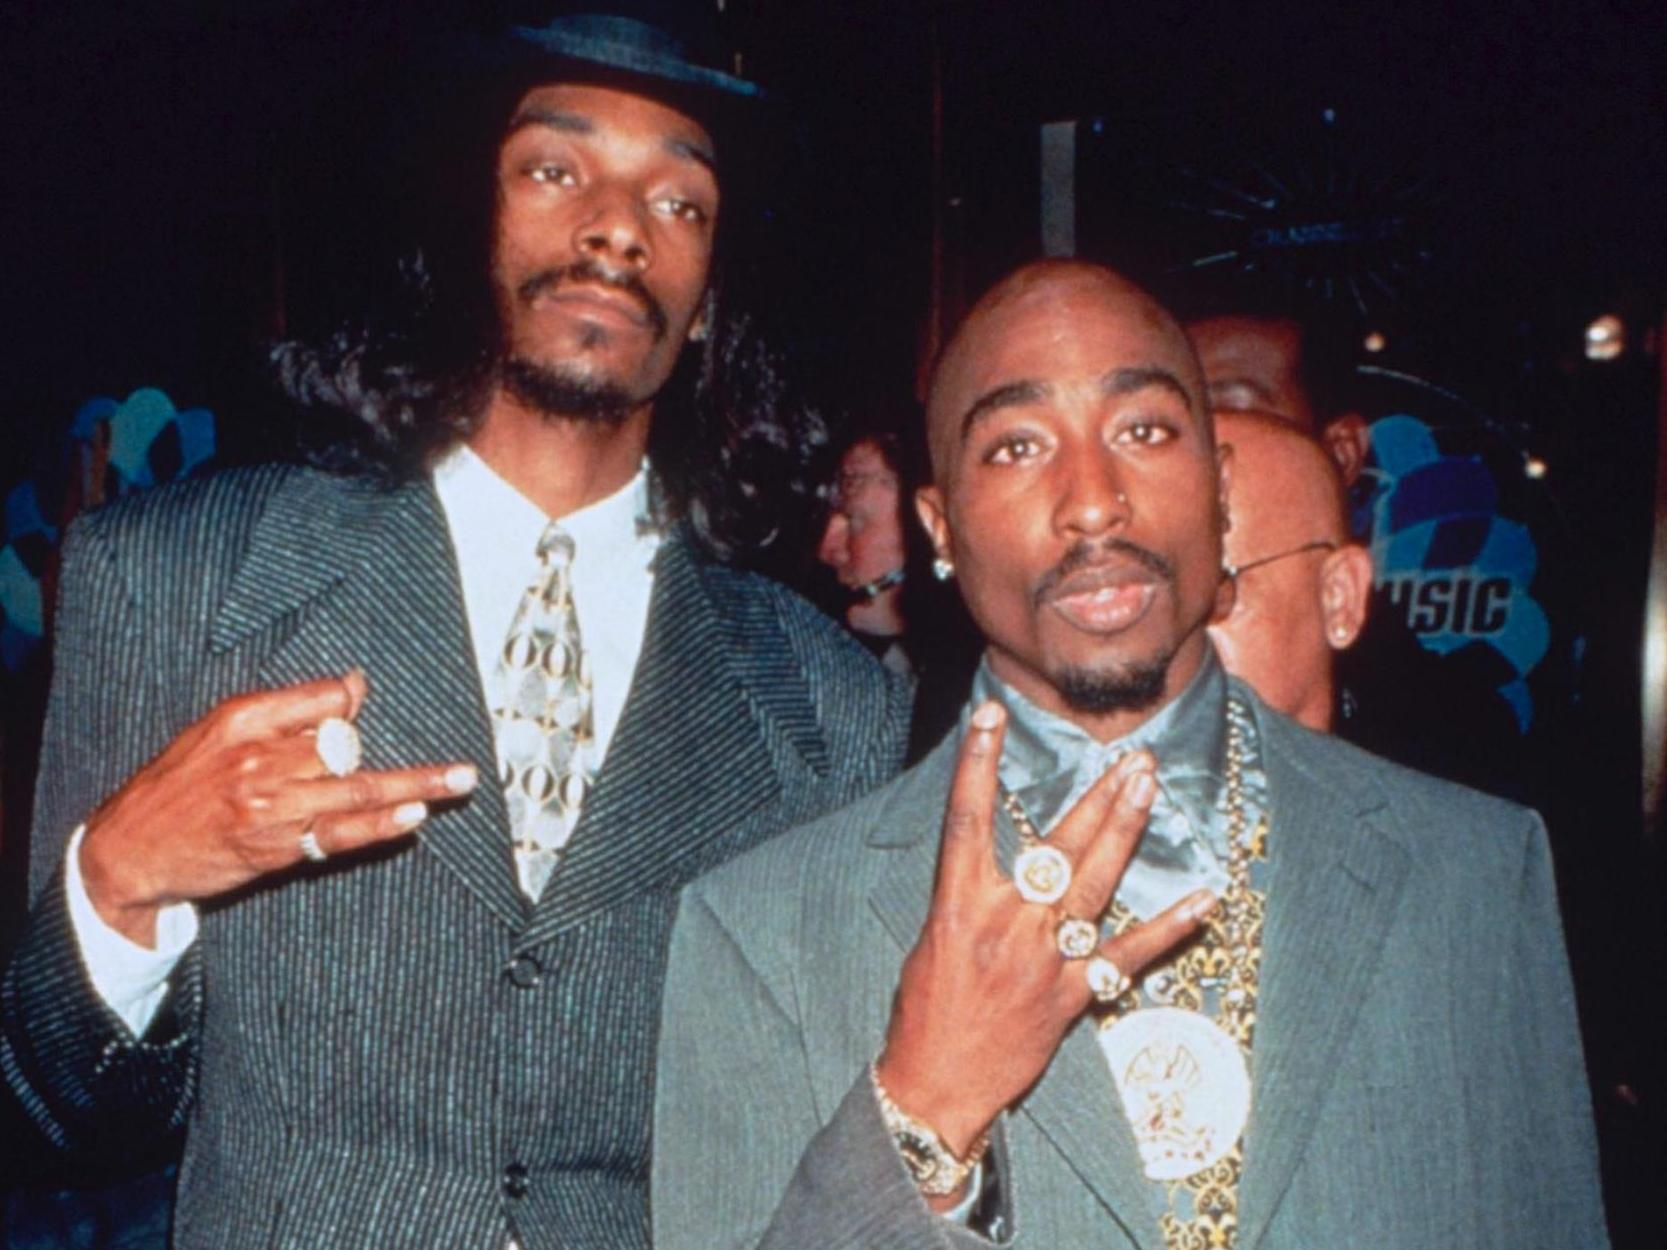 Snoop Dogg shares throwback video of Tupac Shakur from year rapper died